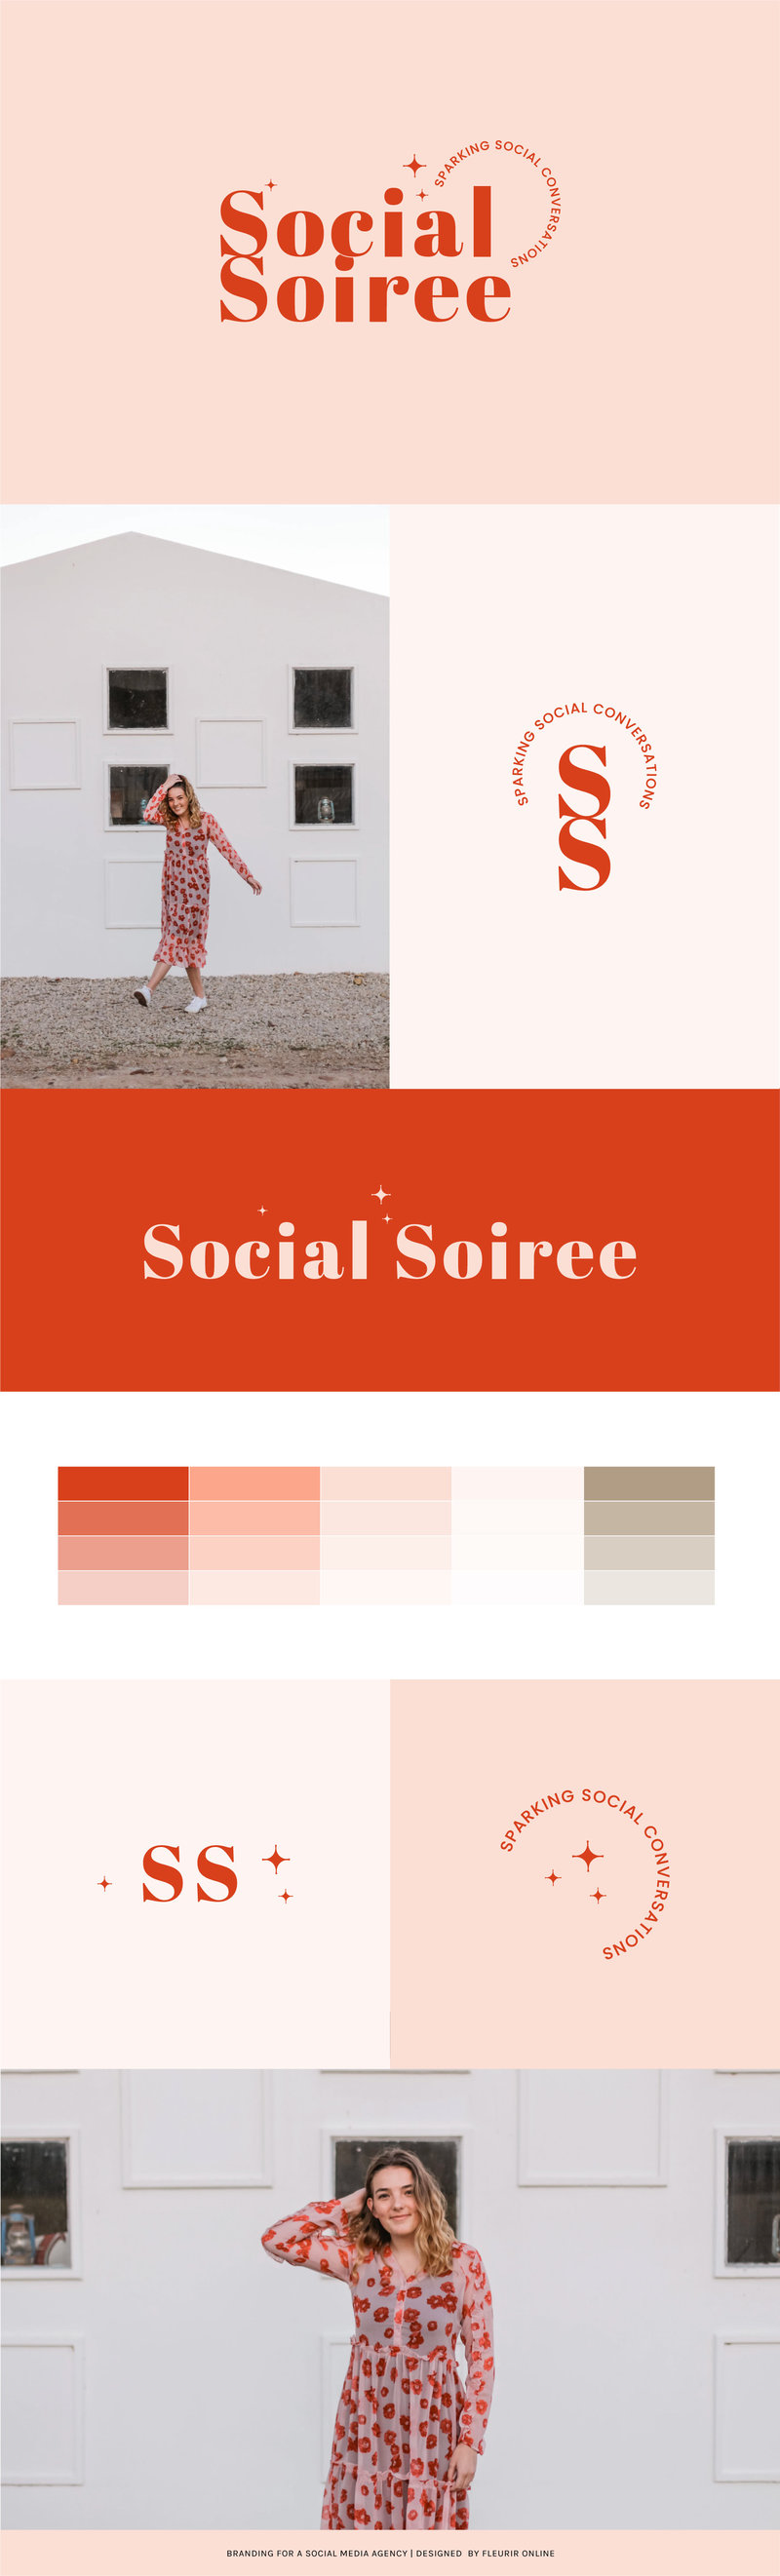 Social Soiree Brand Board